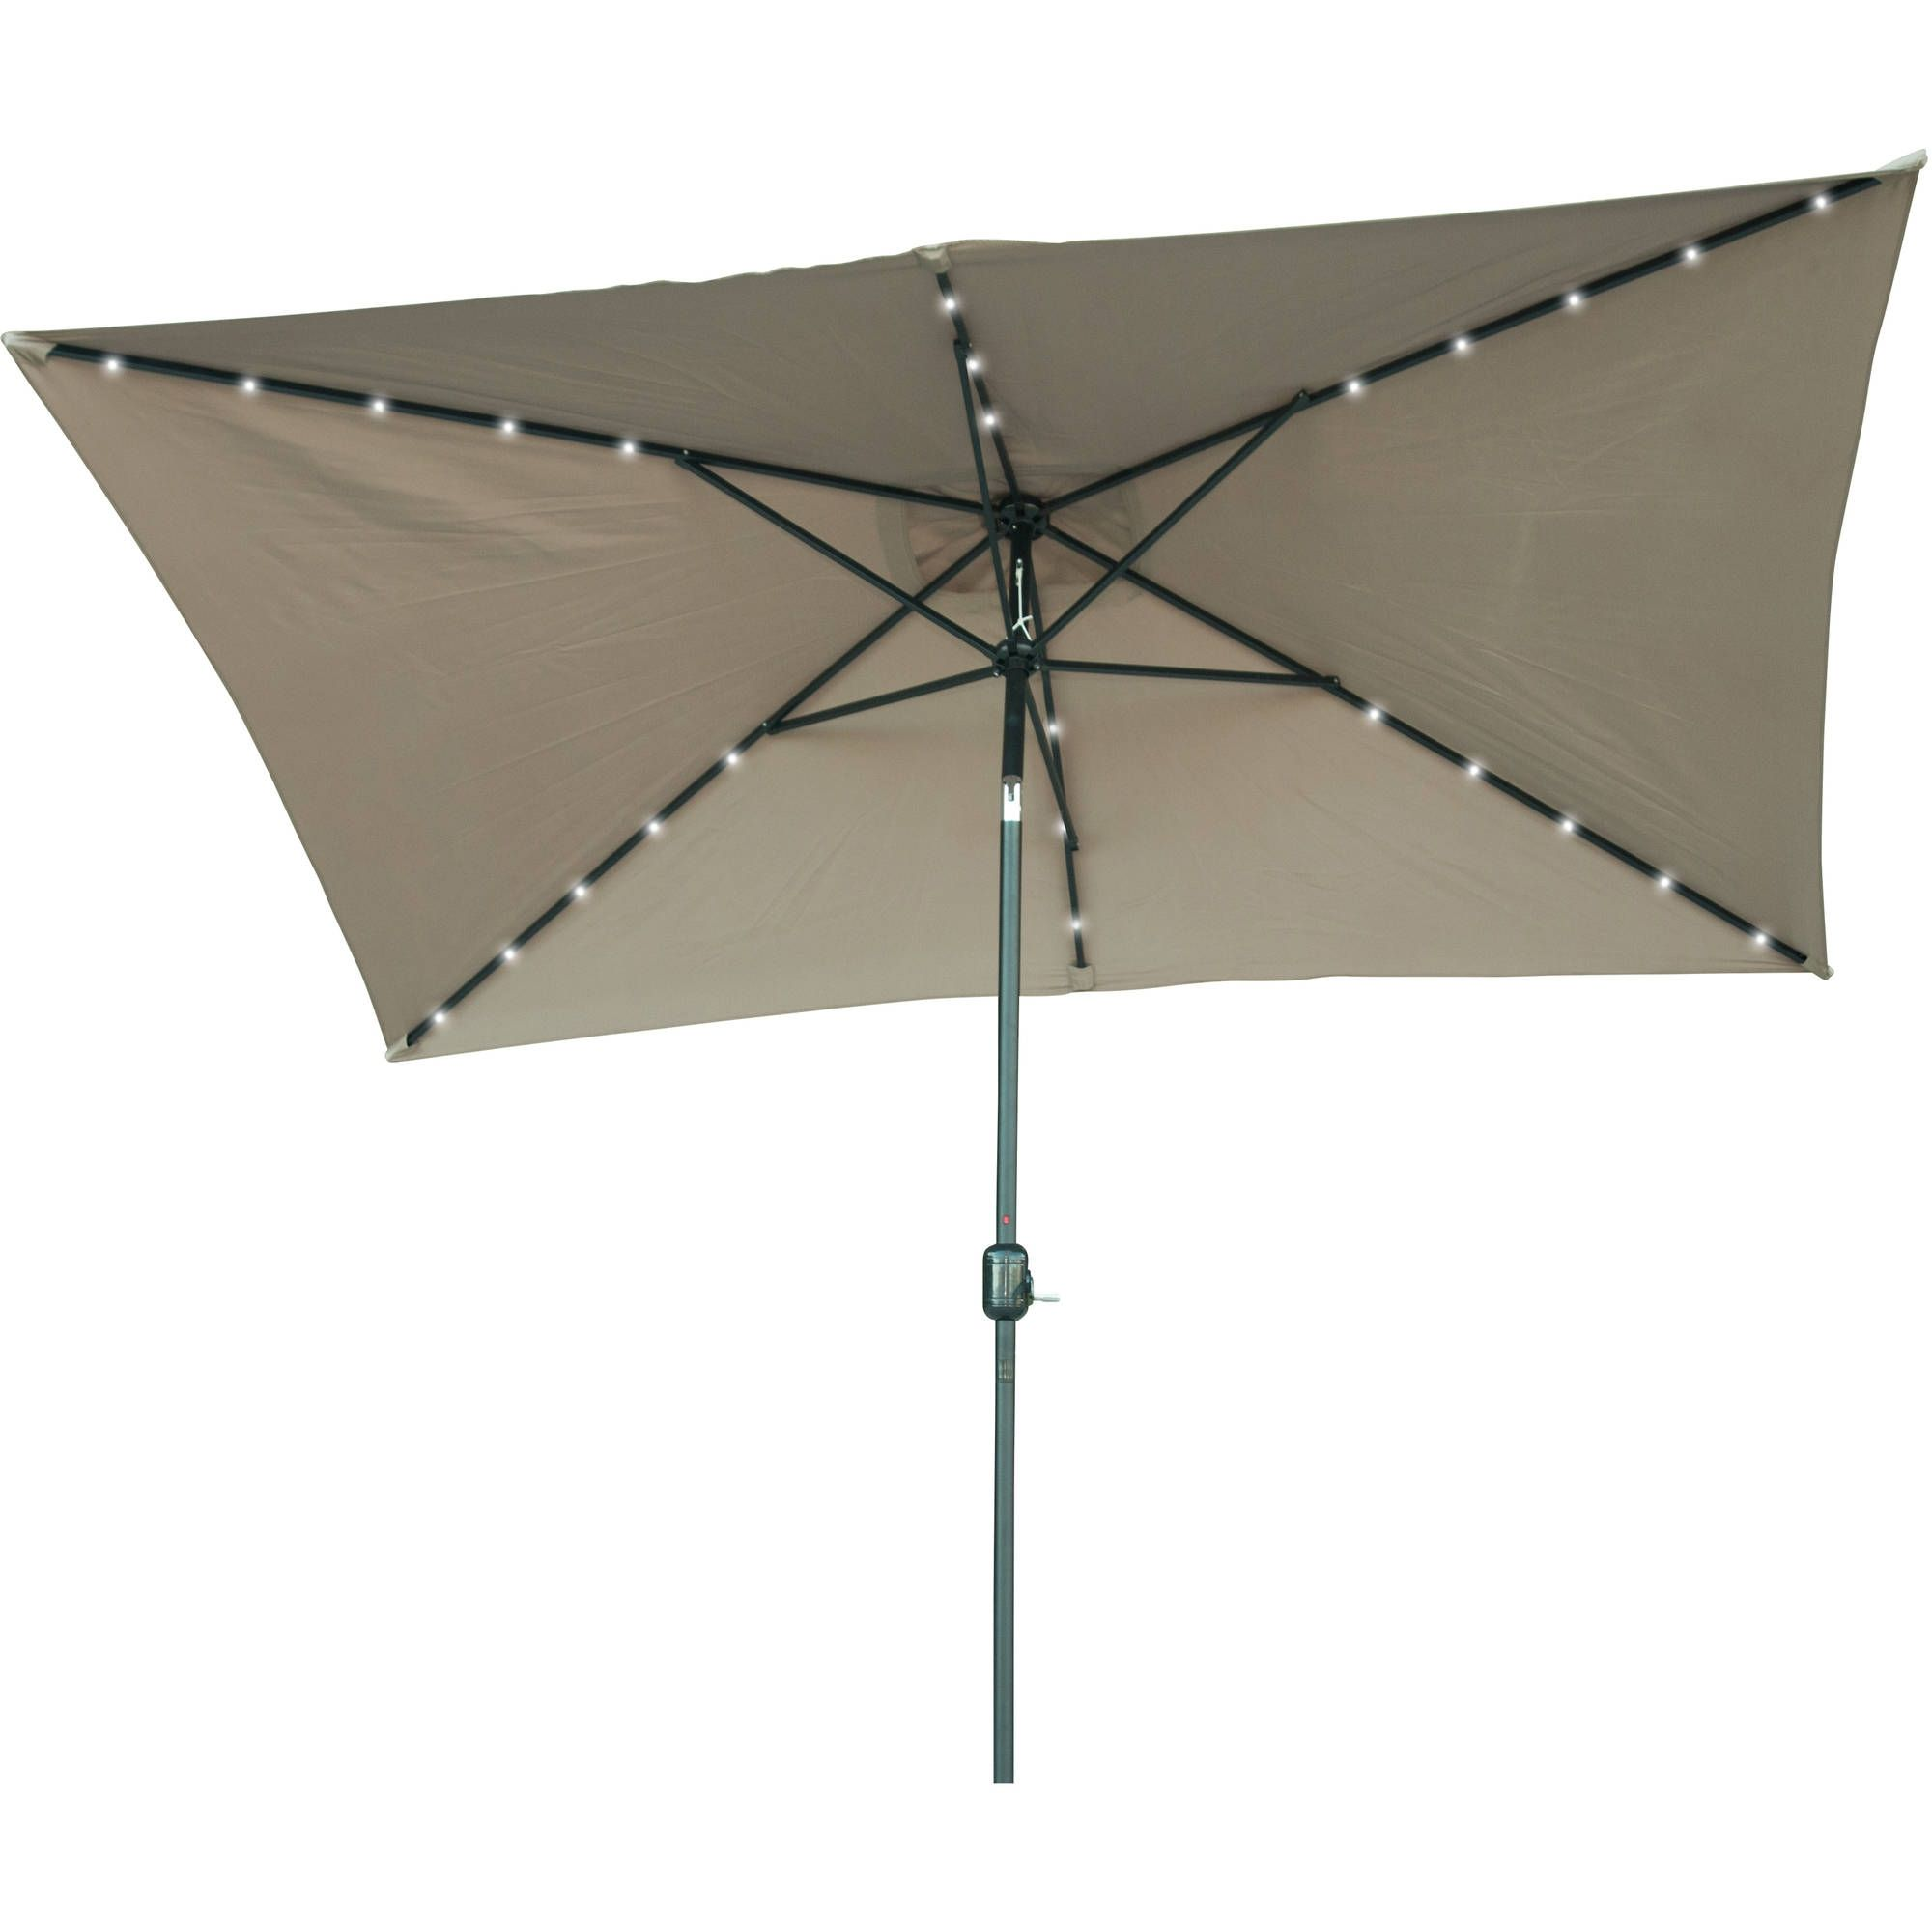 Rectangular Patio Umbrella With Solar Lights Rectangular Patio Umbrella With Solar Lights  Patio Decor